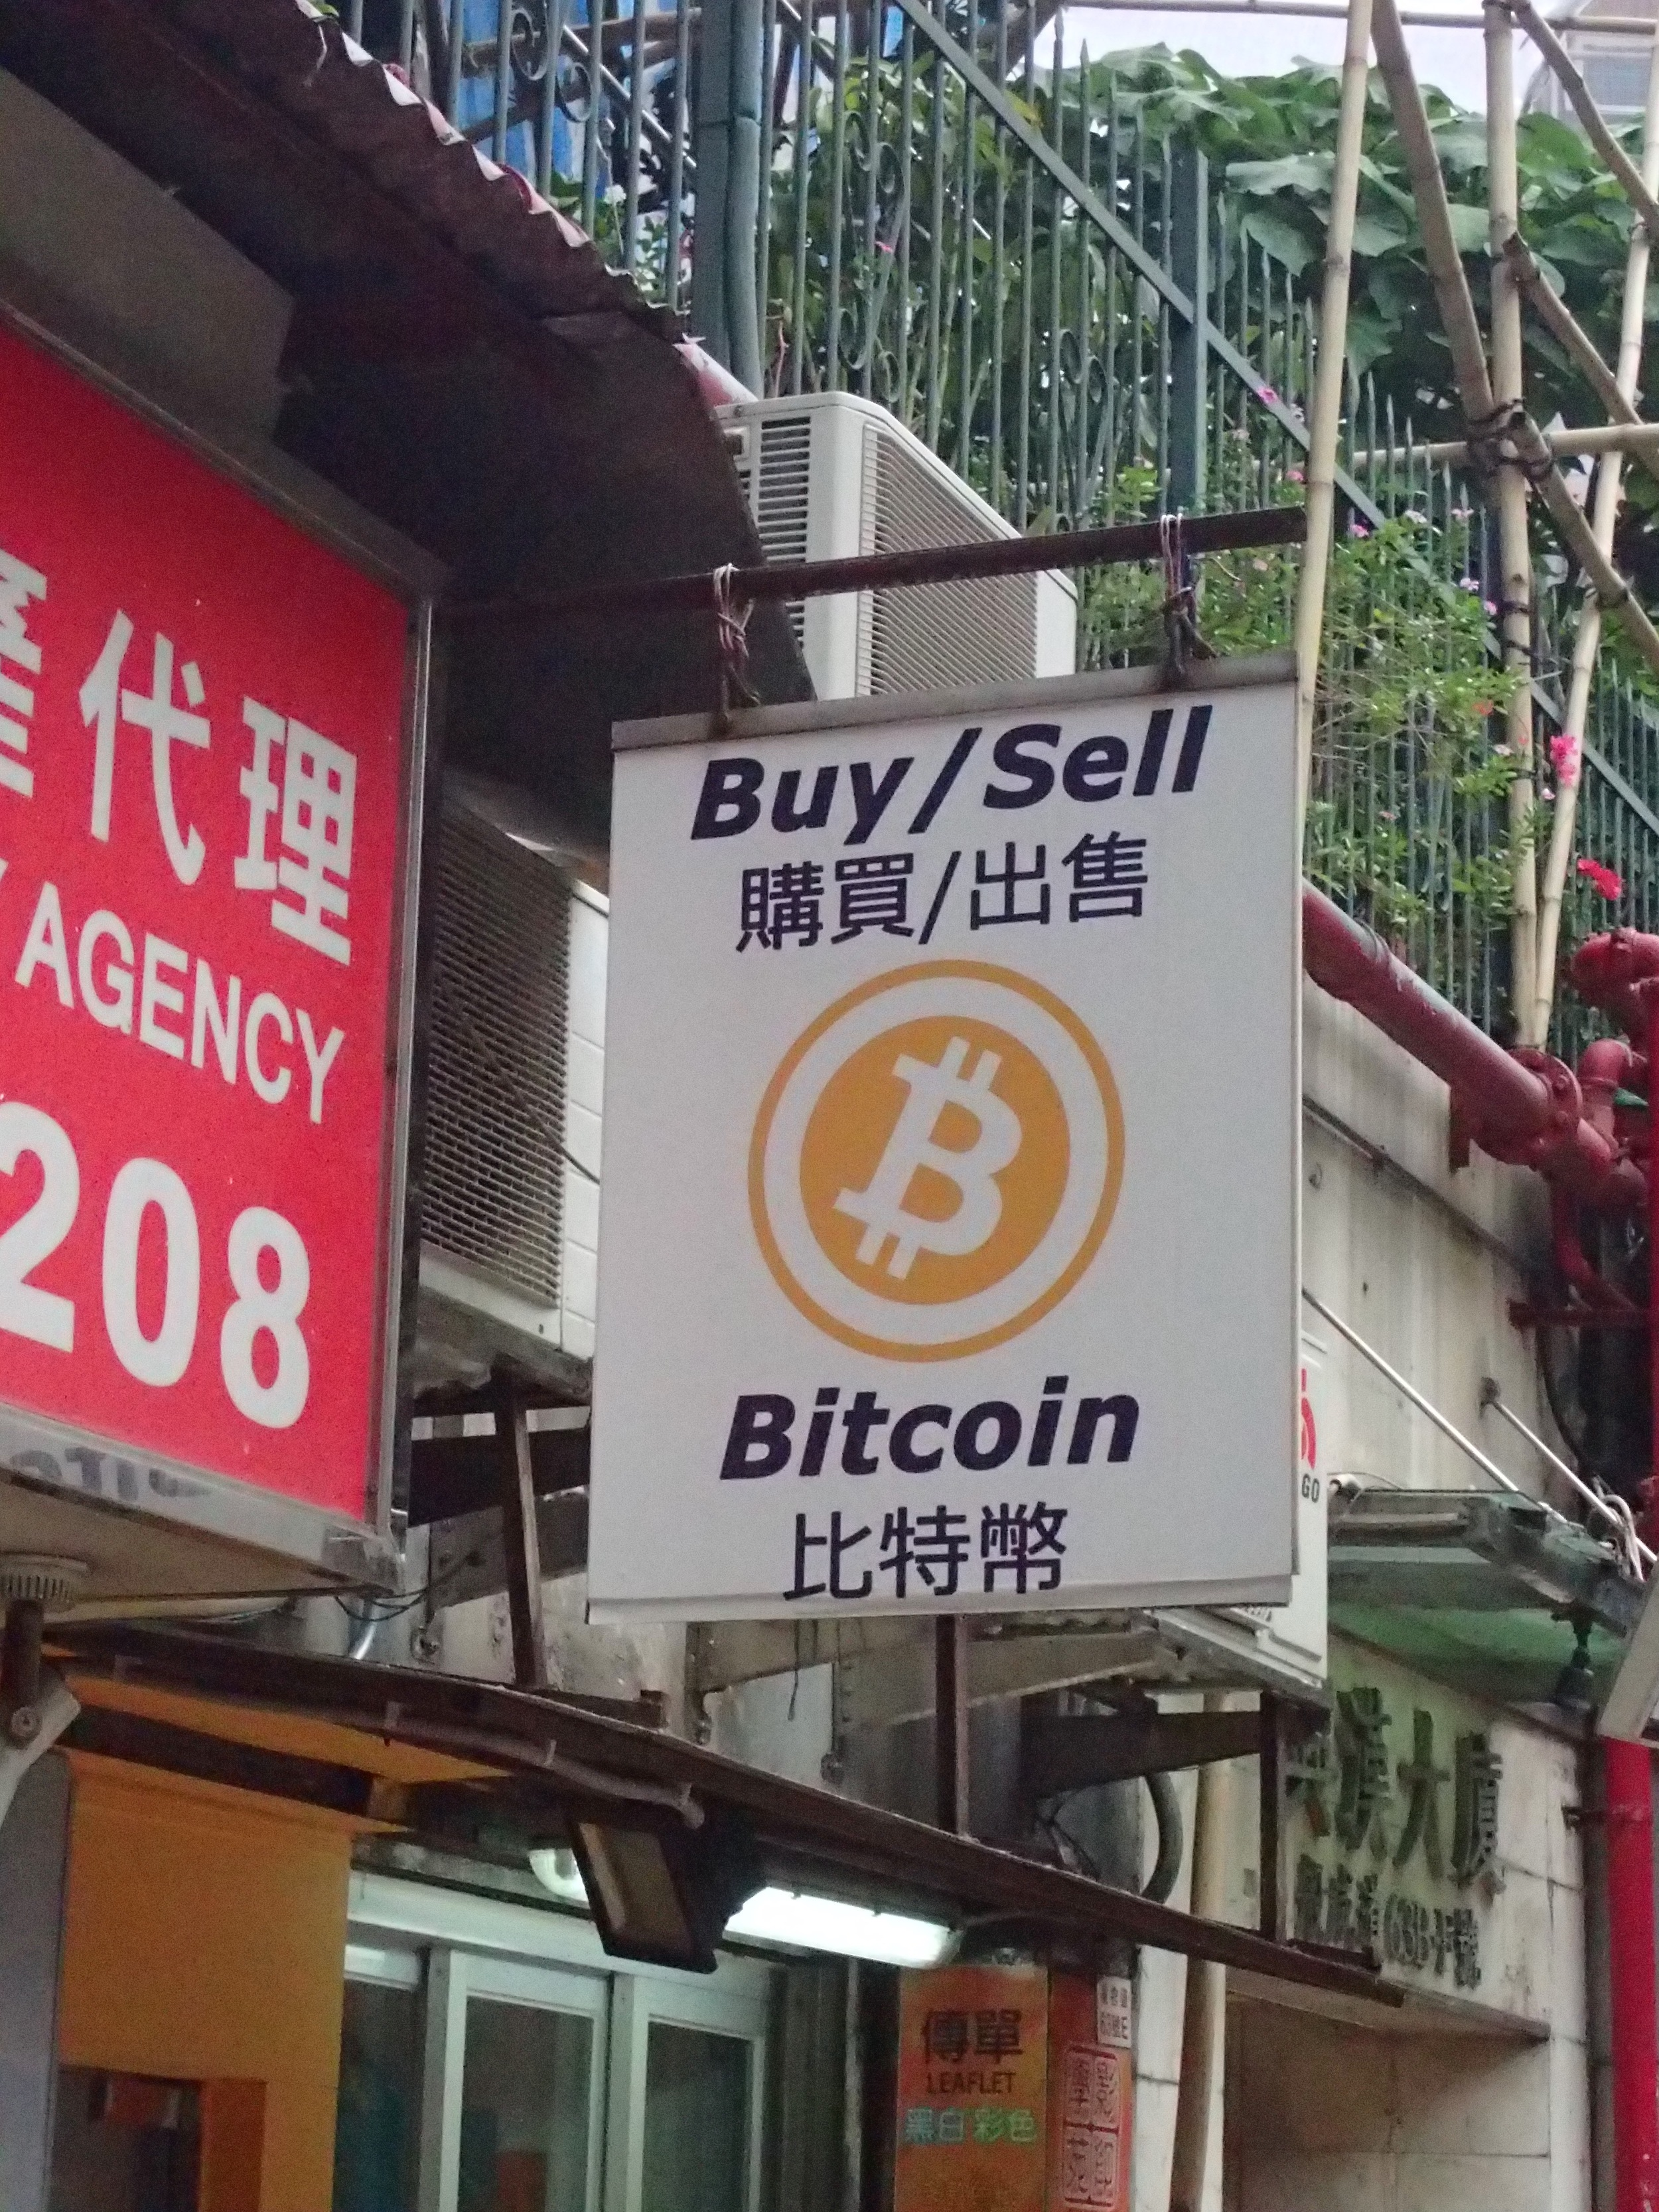 The sign is still up (October 2015, Bonham Road, Hong Kong)